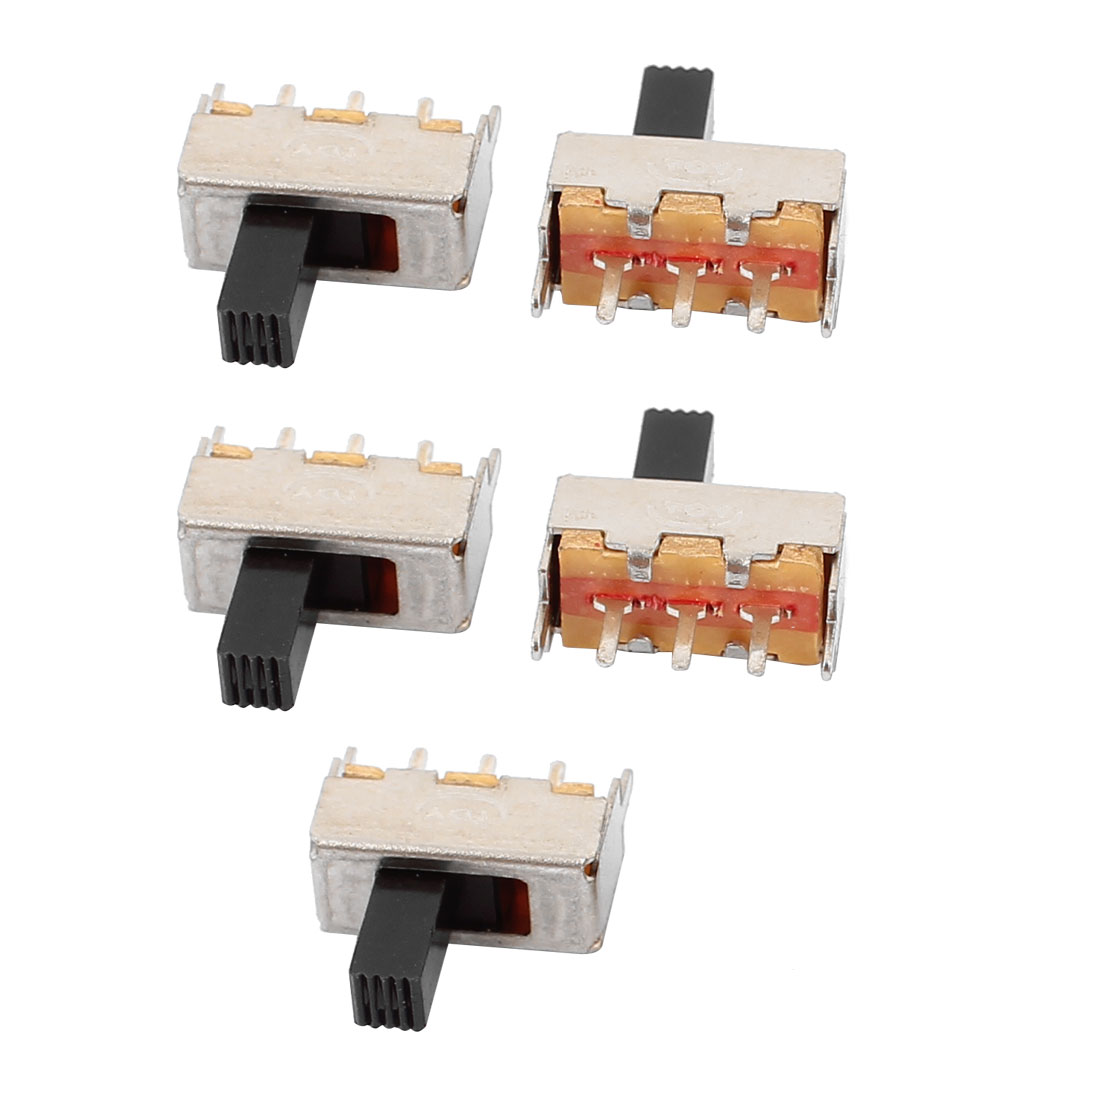 5Pcs 2 Position 3P SPDT Micro Slide Switch Latching Digital Product Switch